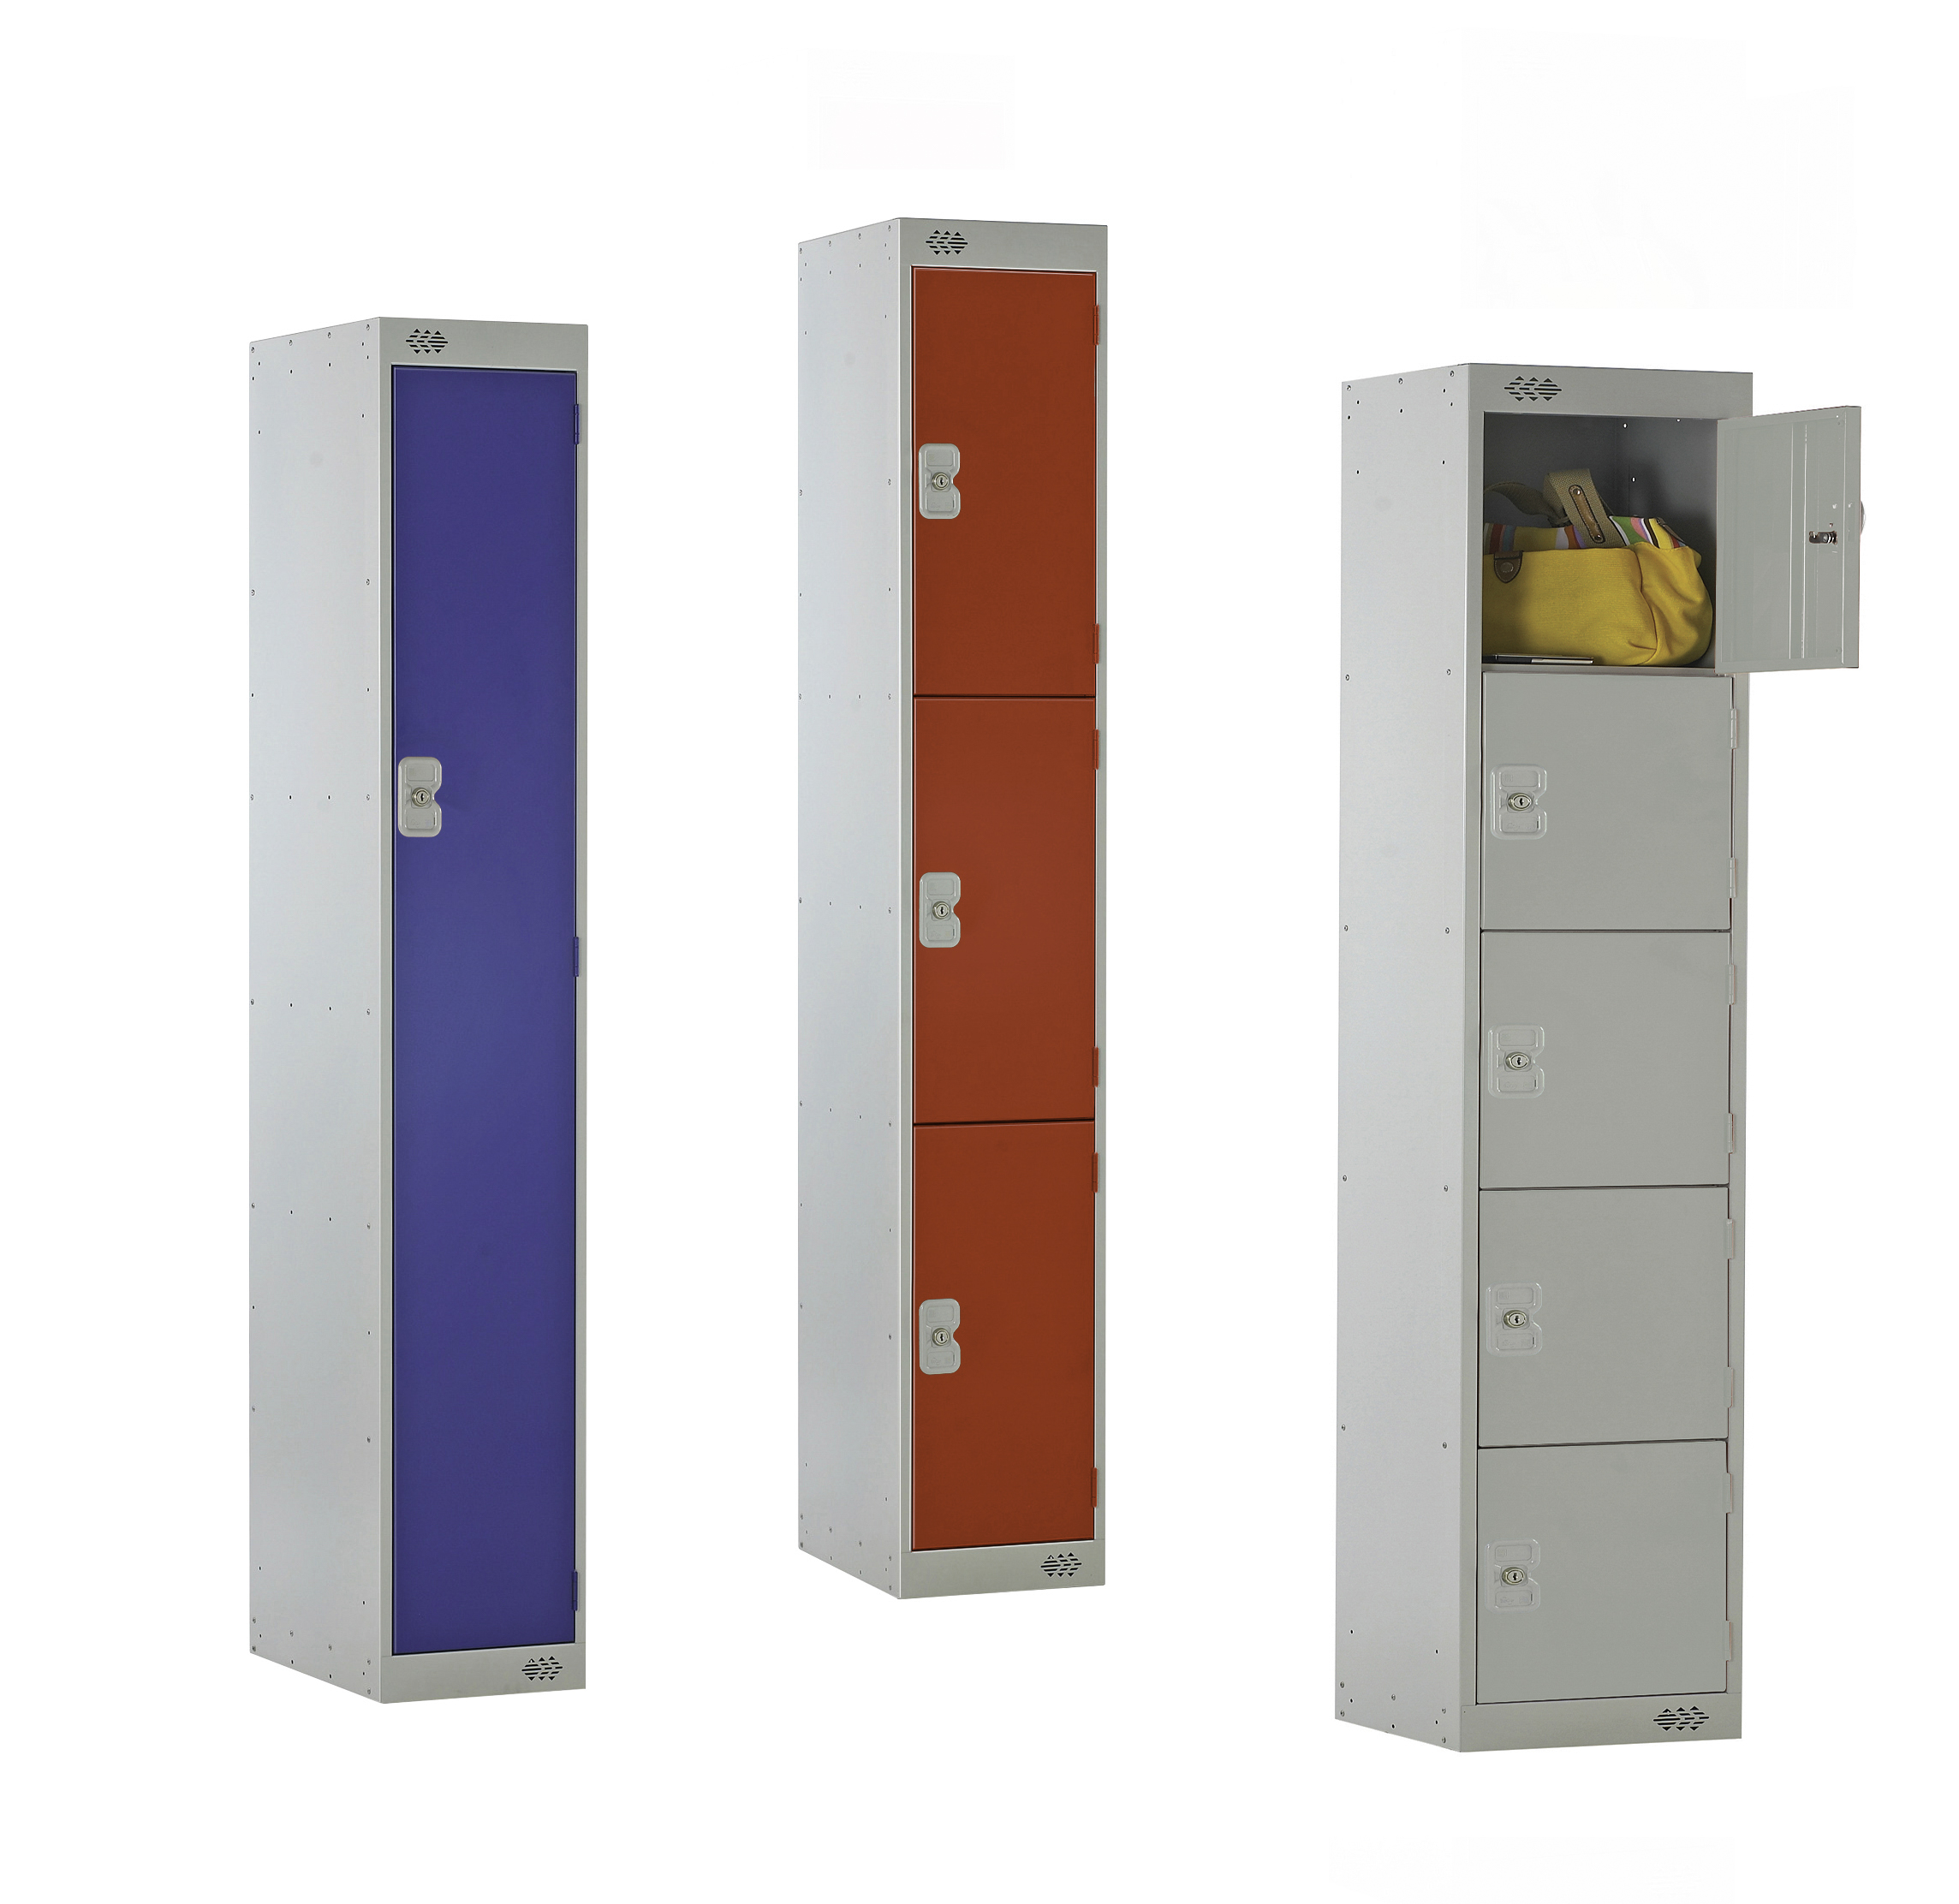 Link51 quick delivery 5 day lockers UK delivery